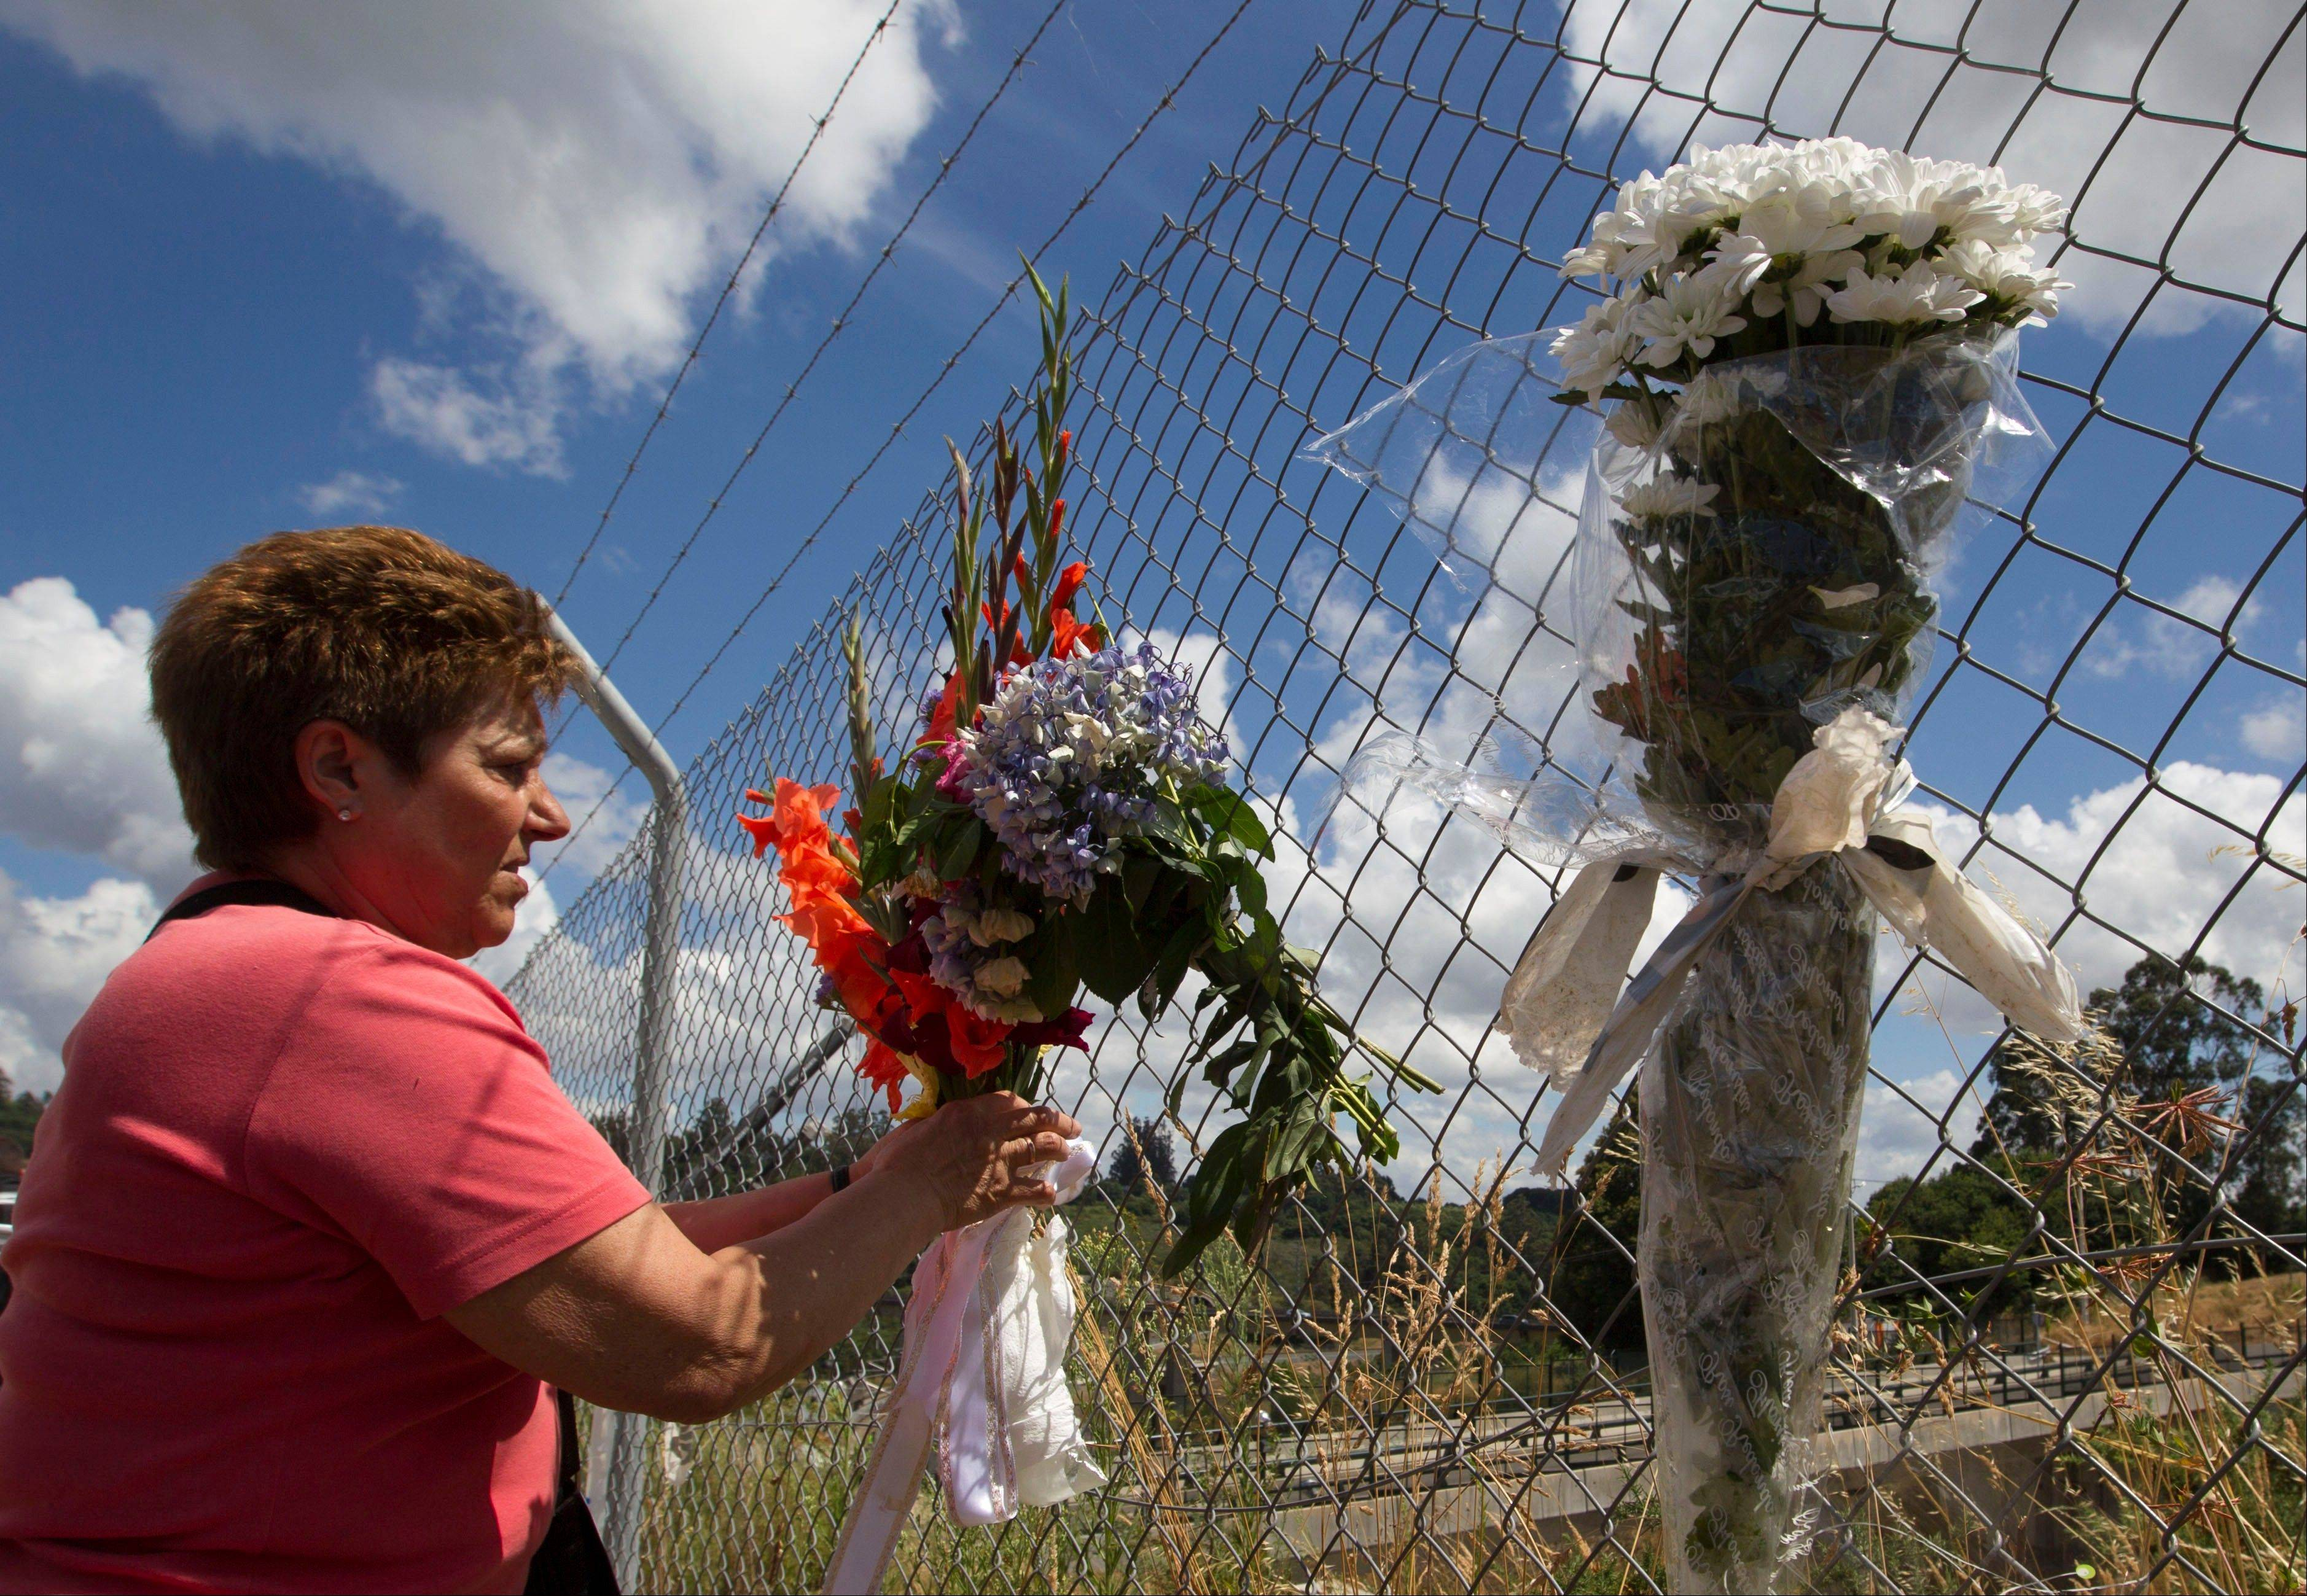 A woman fixes a flower branch on a fence above the railway tracks at the spot of the train crash in Santiago de Compostela, Spain, Saturday July 27. Spain's interior minister Jorge Fernandez Diaz says the driver whose speeding train crashed, killing 78 people, is now being held on suspicion of negligent homicide.